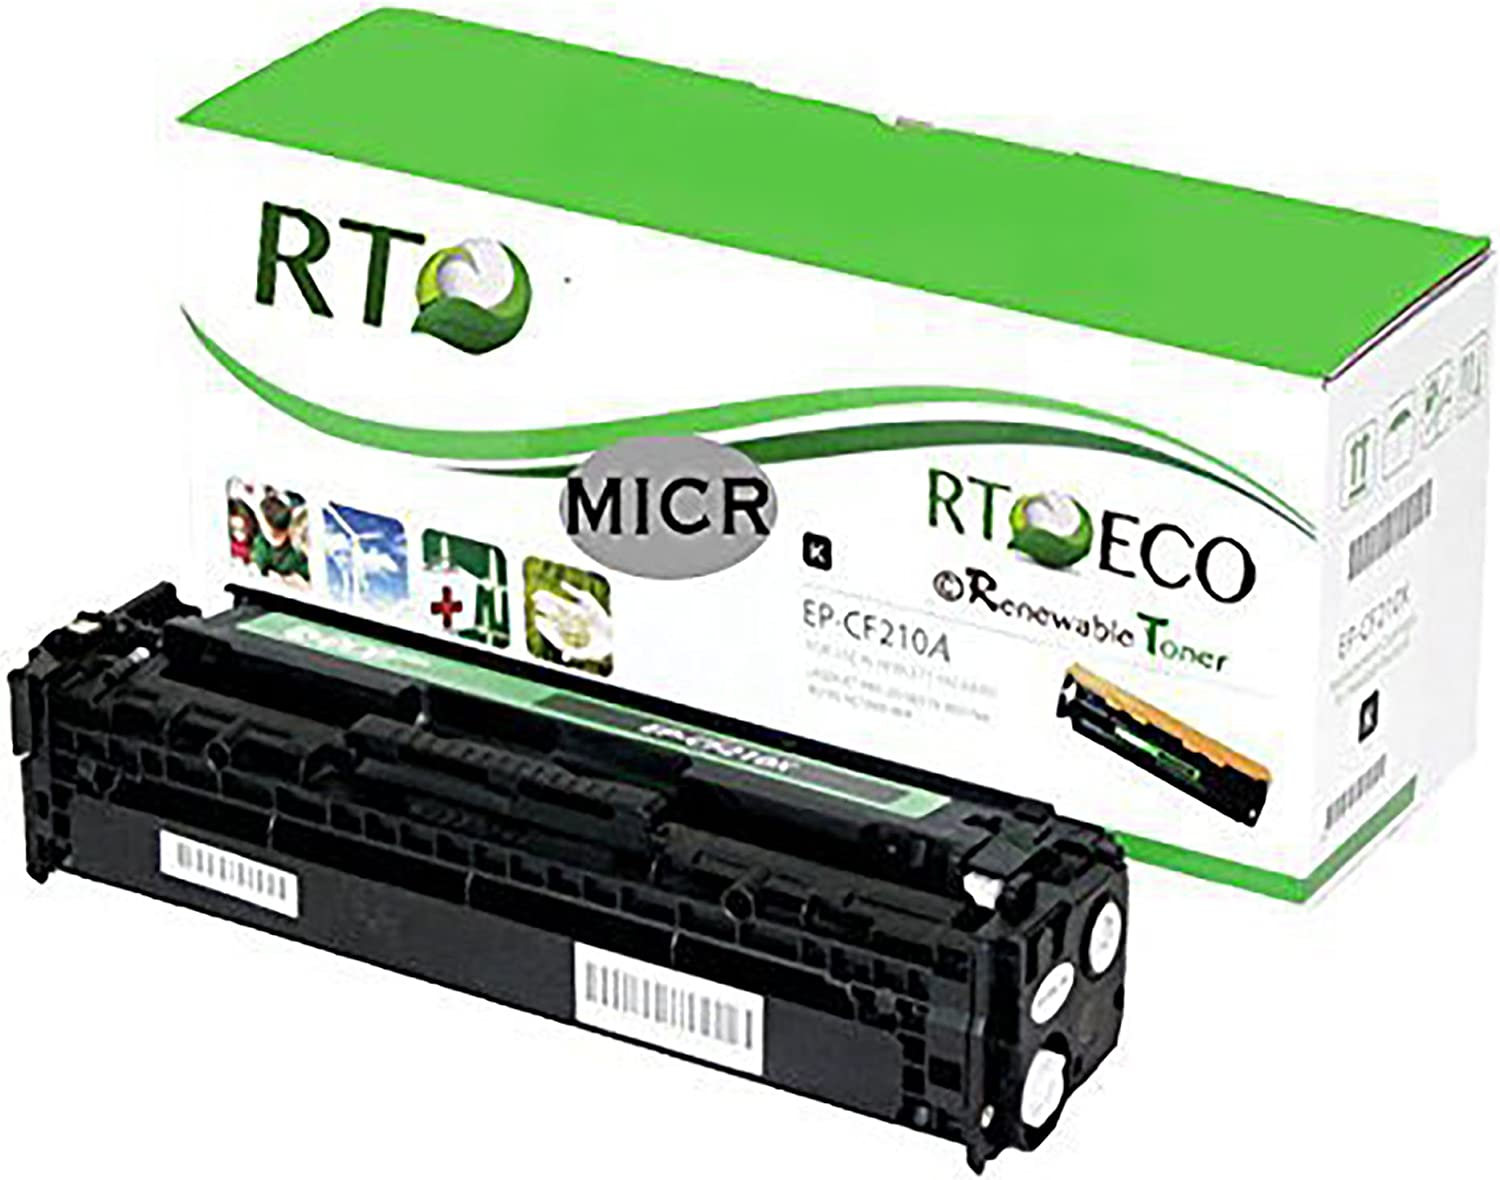 200 M276NW; Black Ink: PTCF210A 131A; Models: Color Laserjet 200 M251NW MG Compatible Toner Cartridges Replacement for HP CF210A